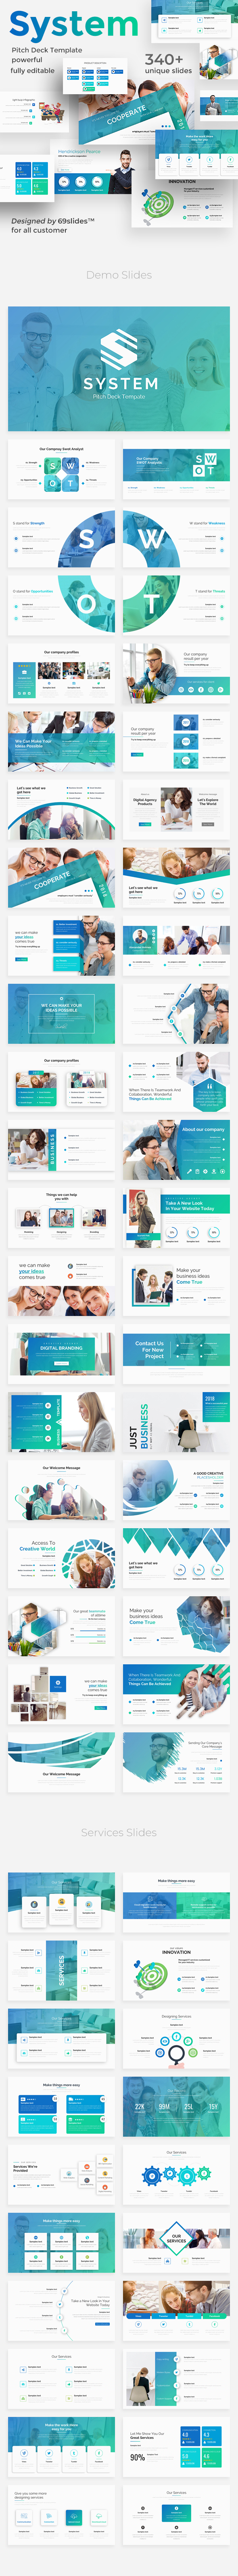 System Thinking Pitch Deck Powerpoint Template